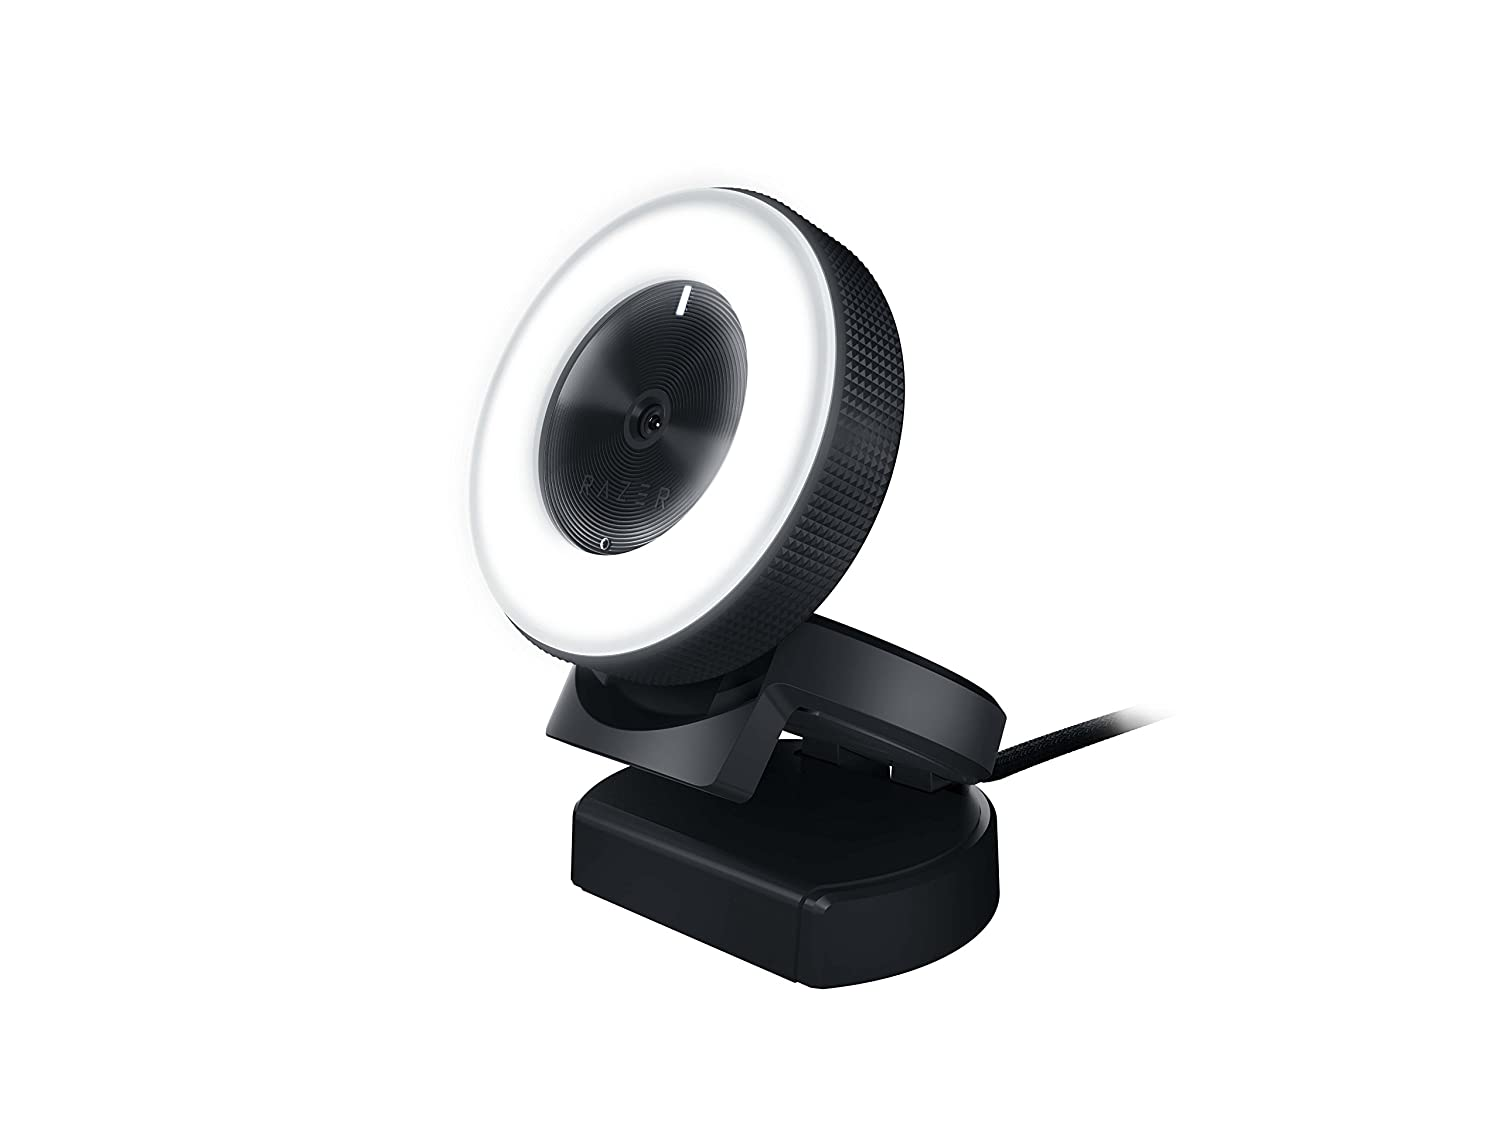 Razer Kiyo - Full HD 1080P Streaming Camera - Pro Webcam Optimized for Youtube/Twitch - Worlds First In-Built Ring Light